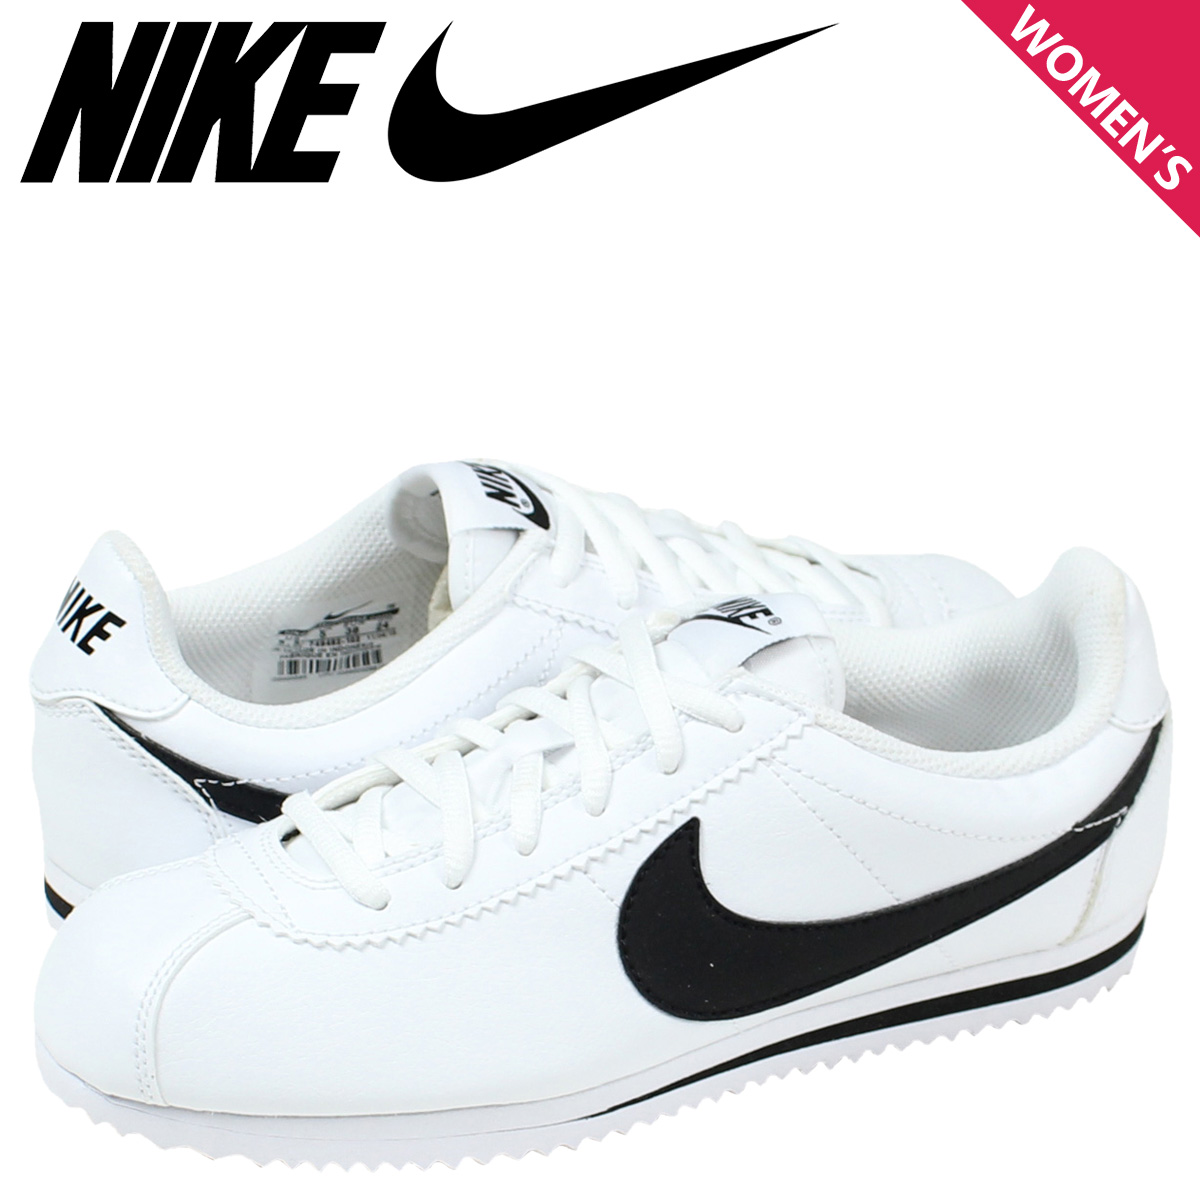 best service e0aaf 8656b [SOLD OUT] Nike NIKE Cortez sneakers Womens CORTEZ GS 749482-102 shoes white